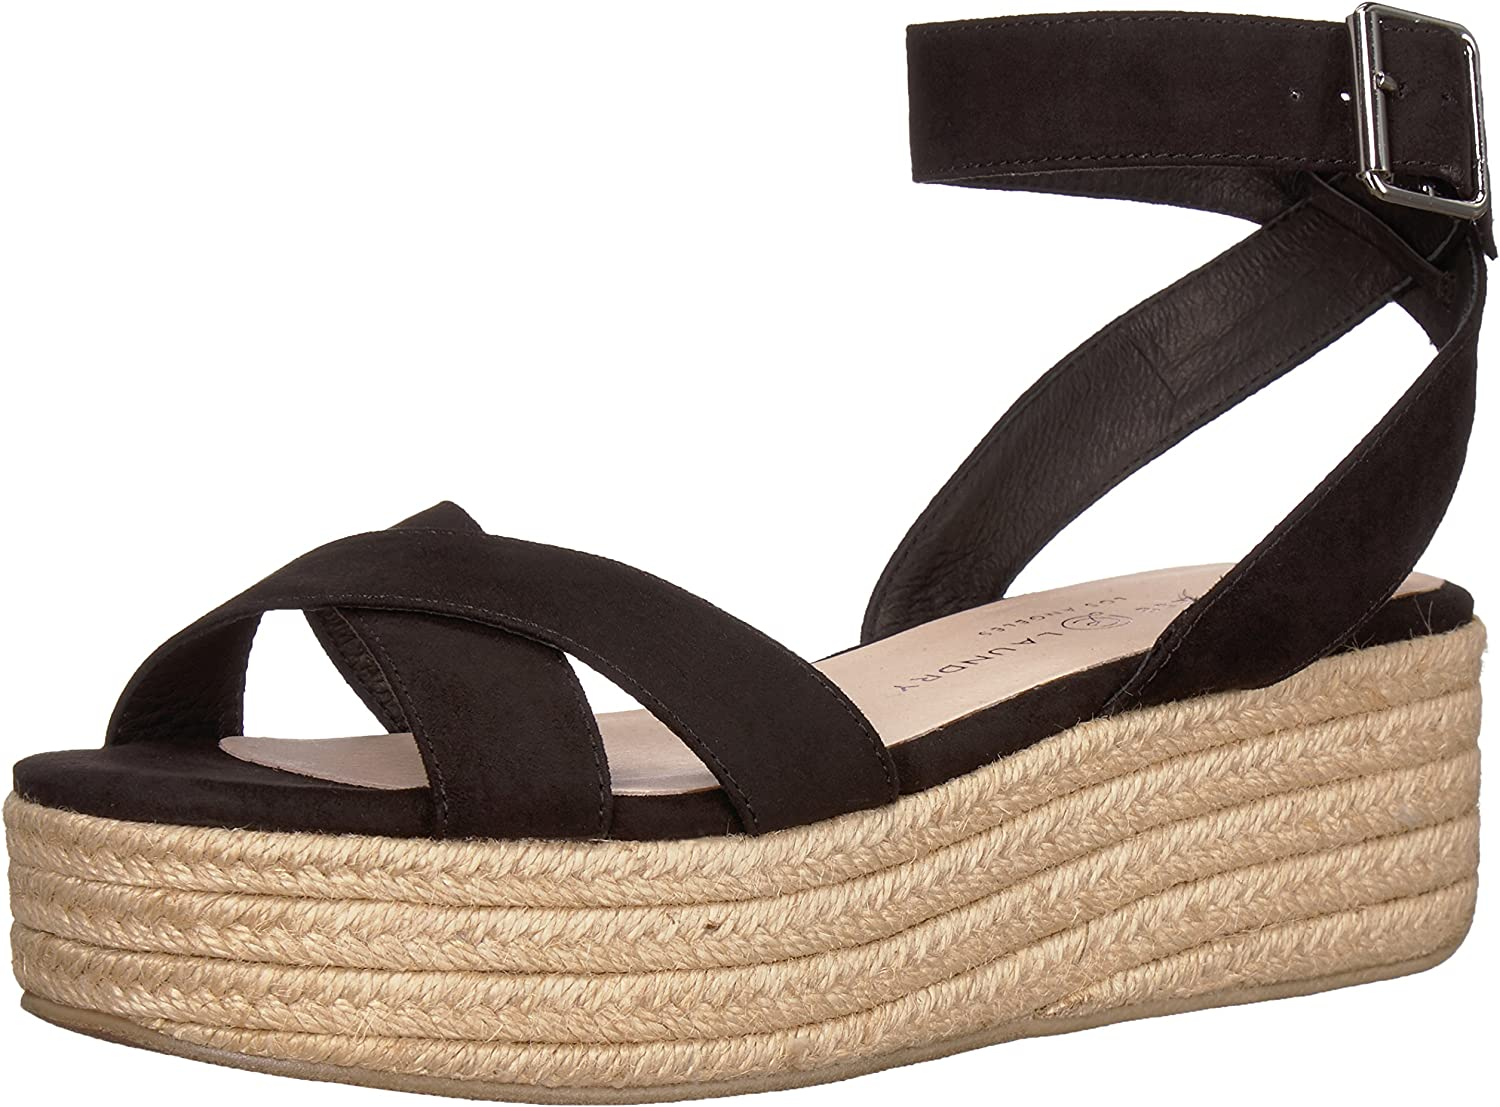 Chinese Laundry Women's Zala Espadrille Wedge Sandal